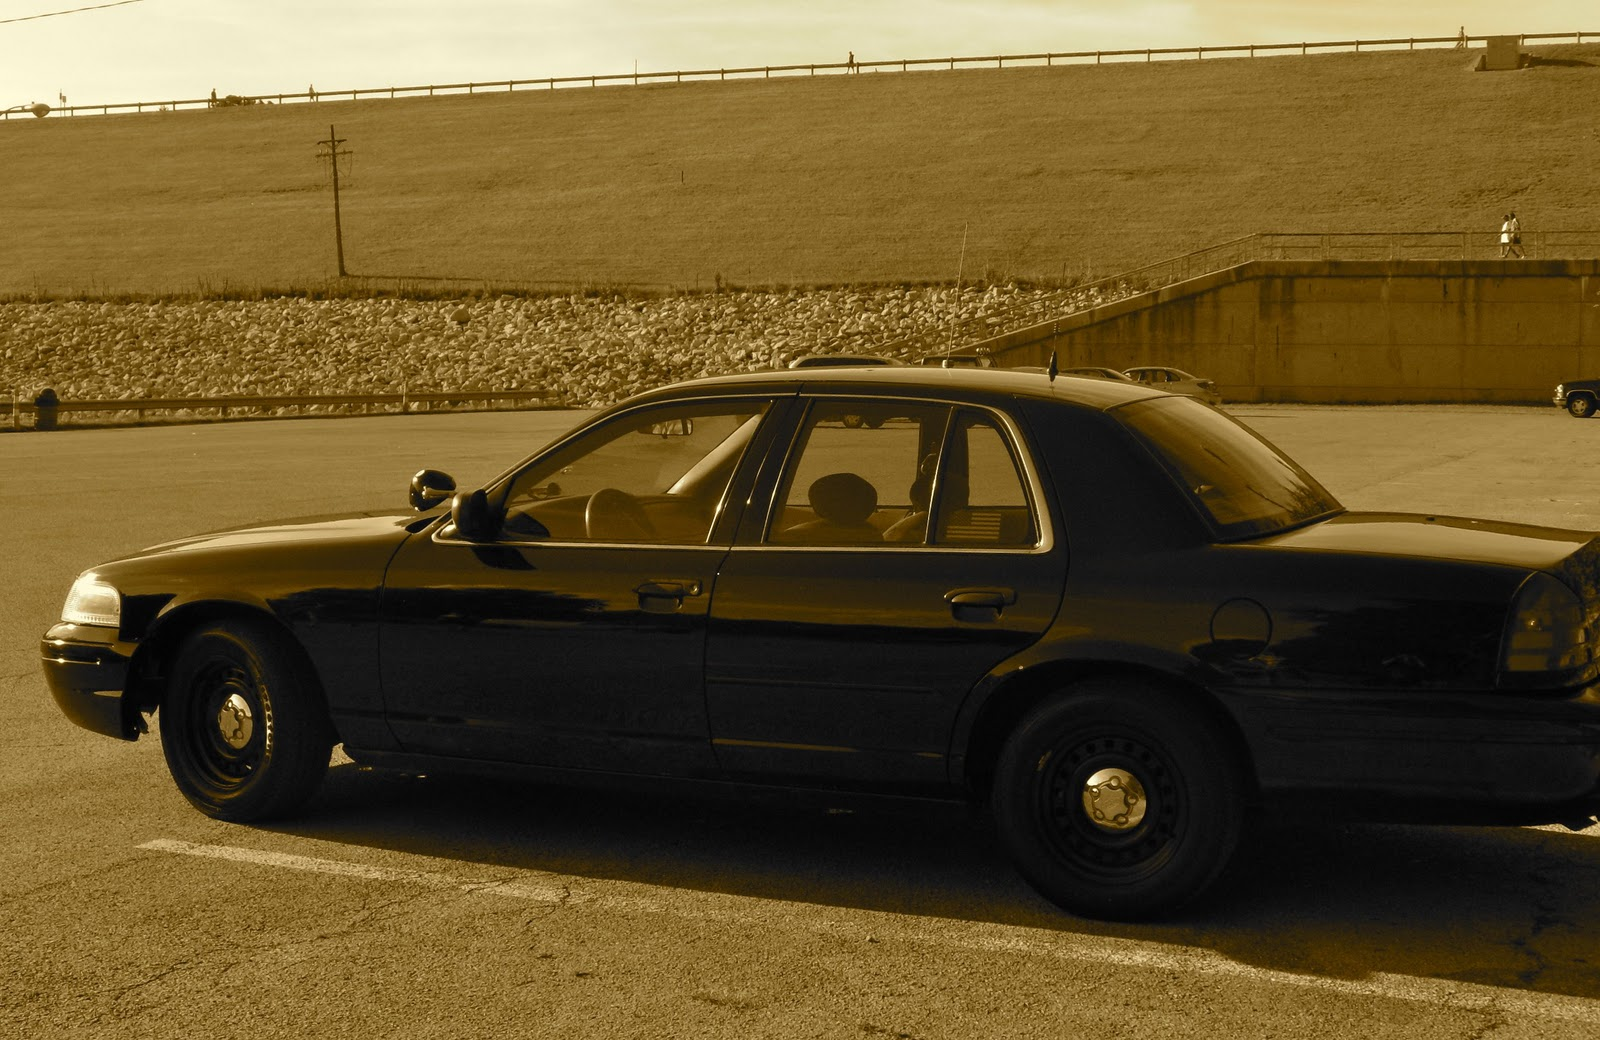 The flip 2002 ford crown victoria p71 police interceptor a k a the cop car